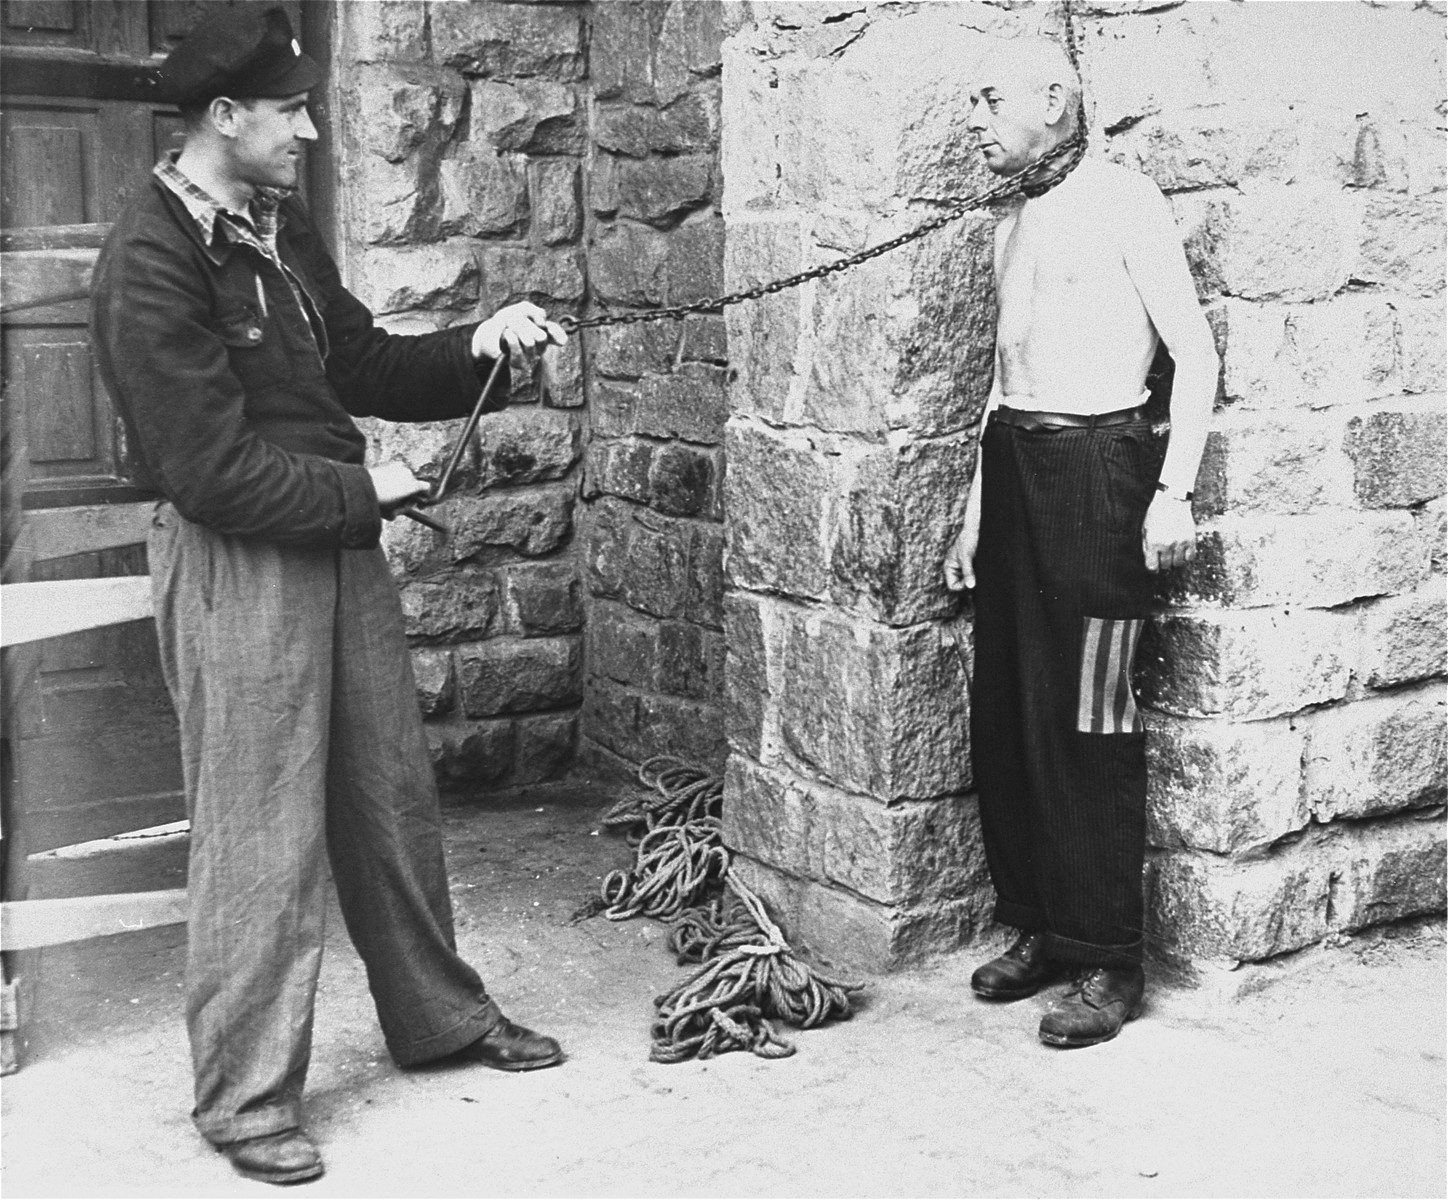 Prisoners' demonstrate a typical form of punishment employed by the SS in Gusen.